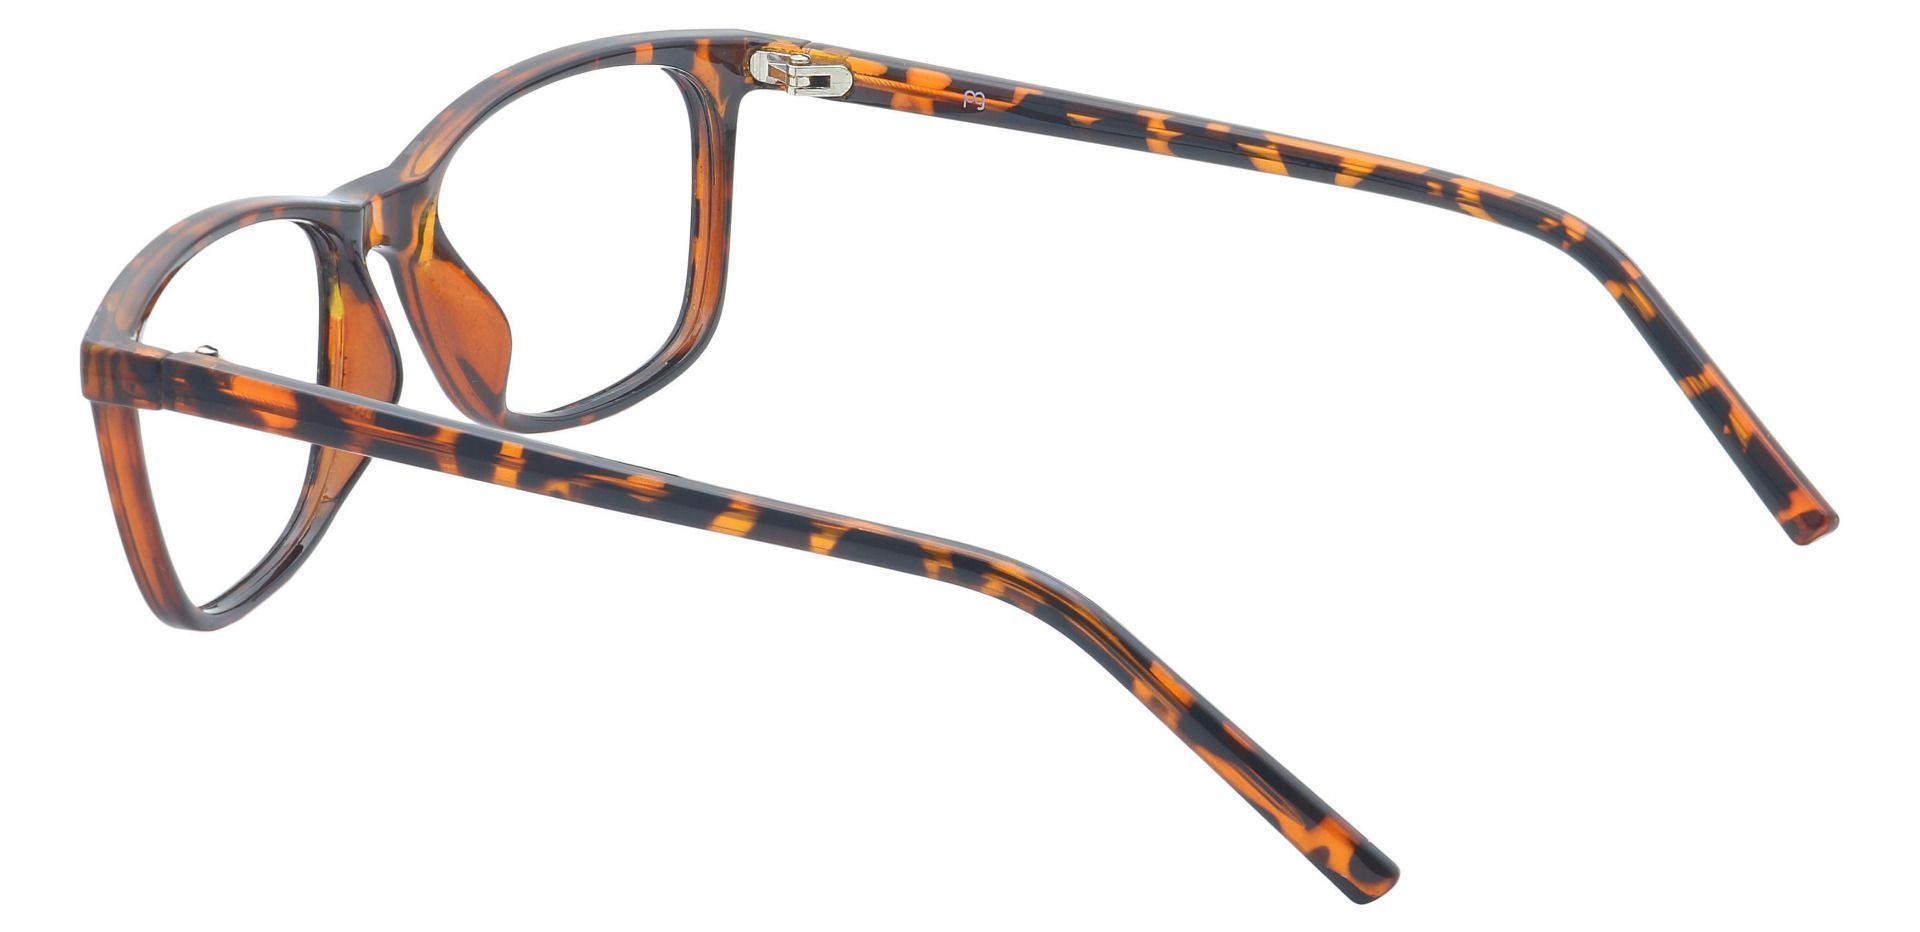 Safita Oval Progressive Glasses - Tortoise